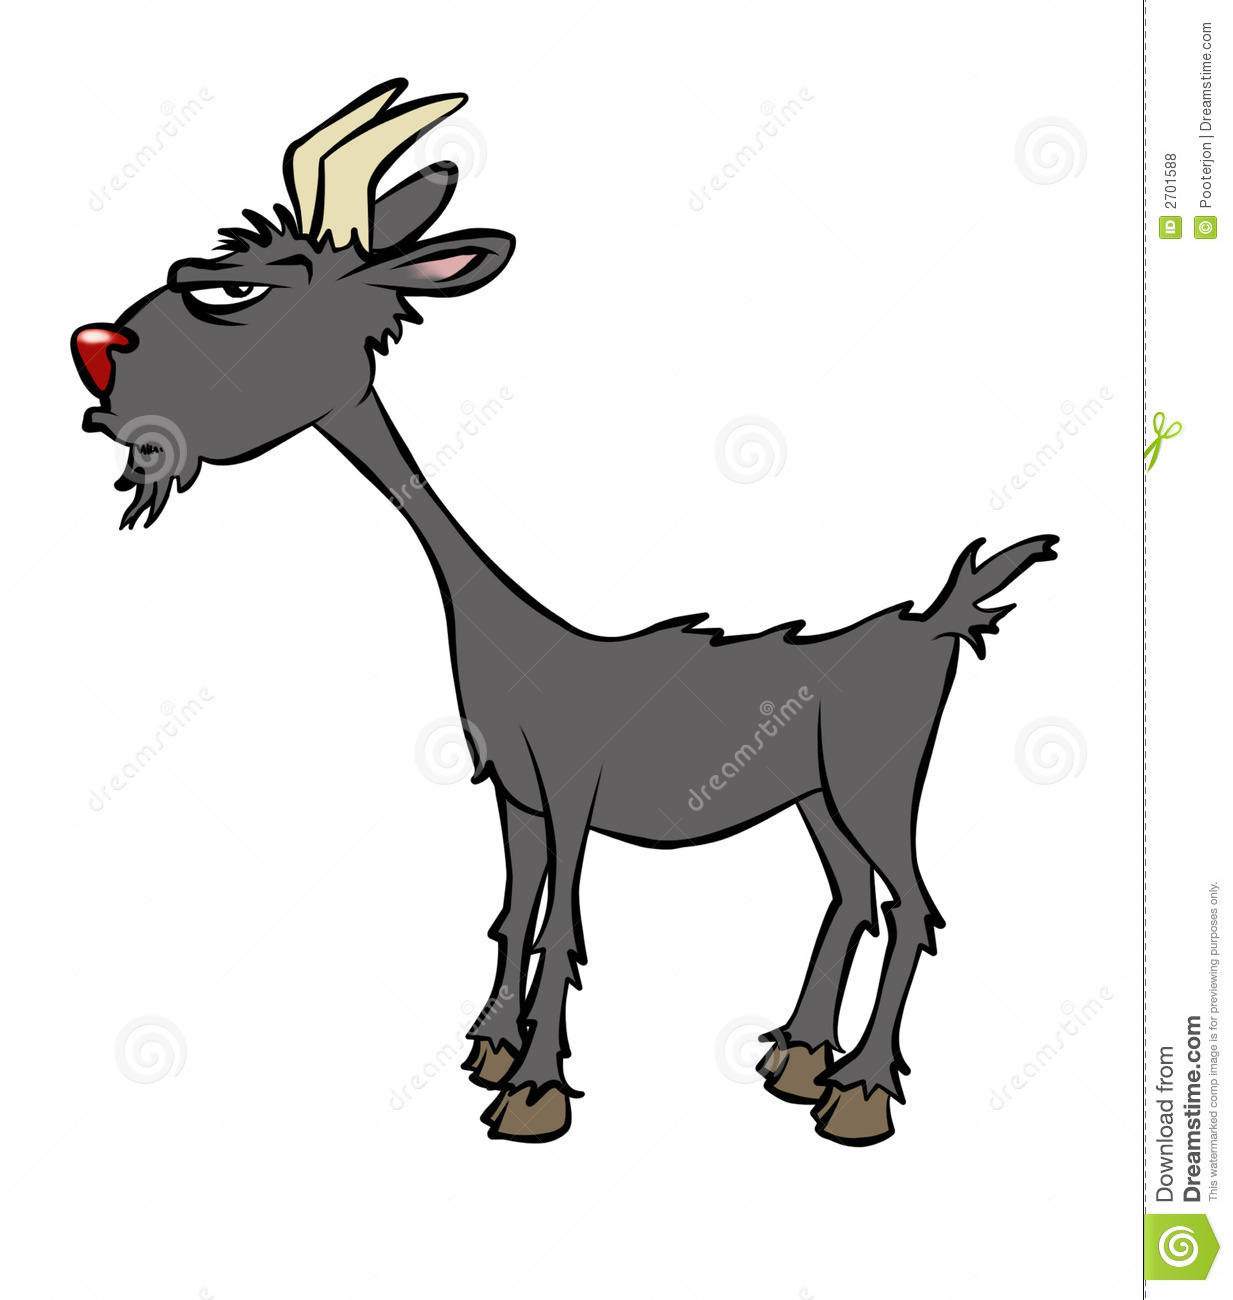 Billy Goat Gruff | Clipart Panda - Free Clipart Images